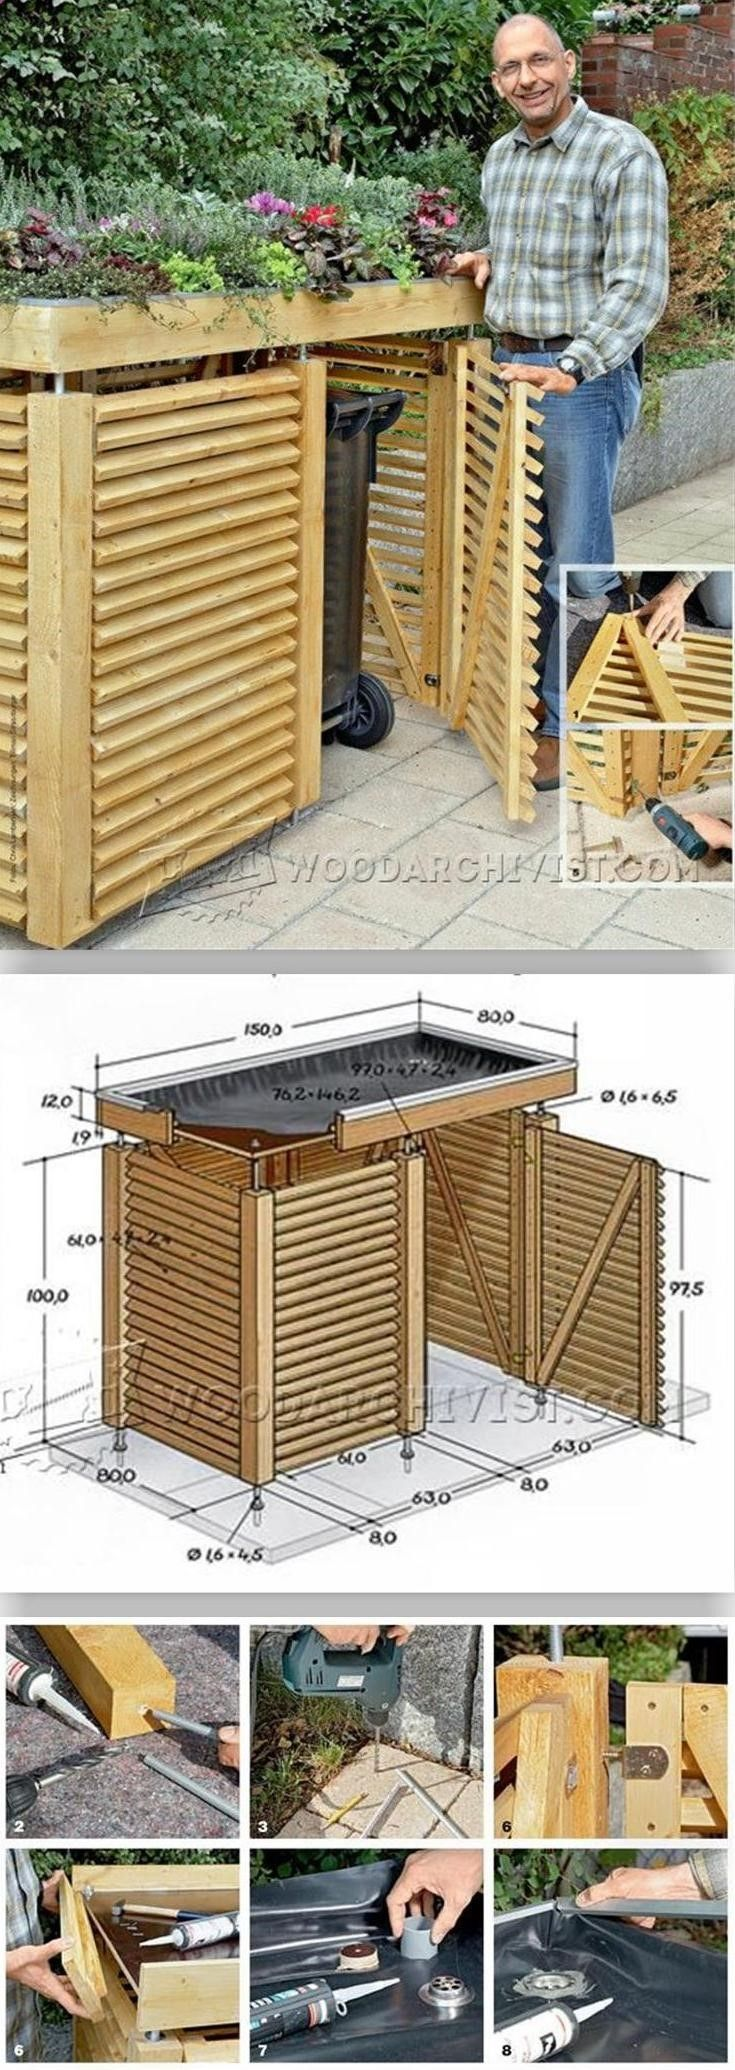 Wood Profits - Garden Store Plans - Outdoor Plans and Projects | WoodArchivist.com - Discover How You Can Start A Woodworking Business From Home Easily in 7 Days With NO Capital Needed!